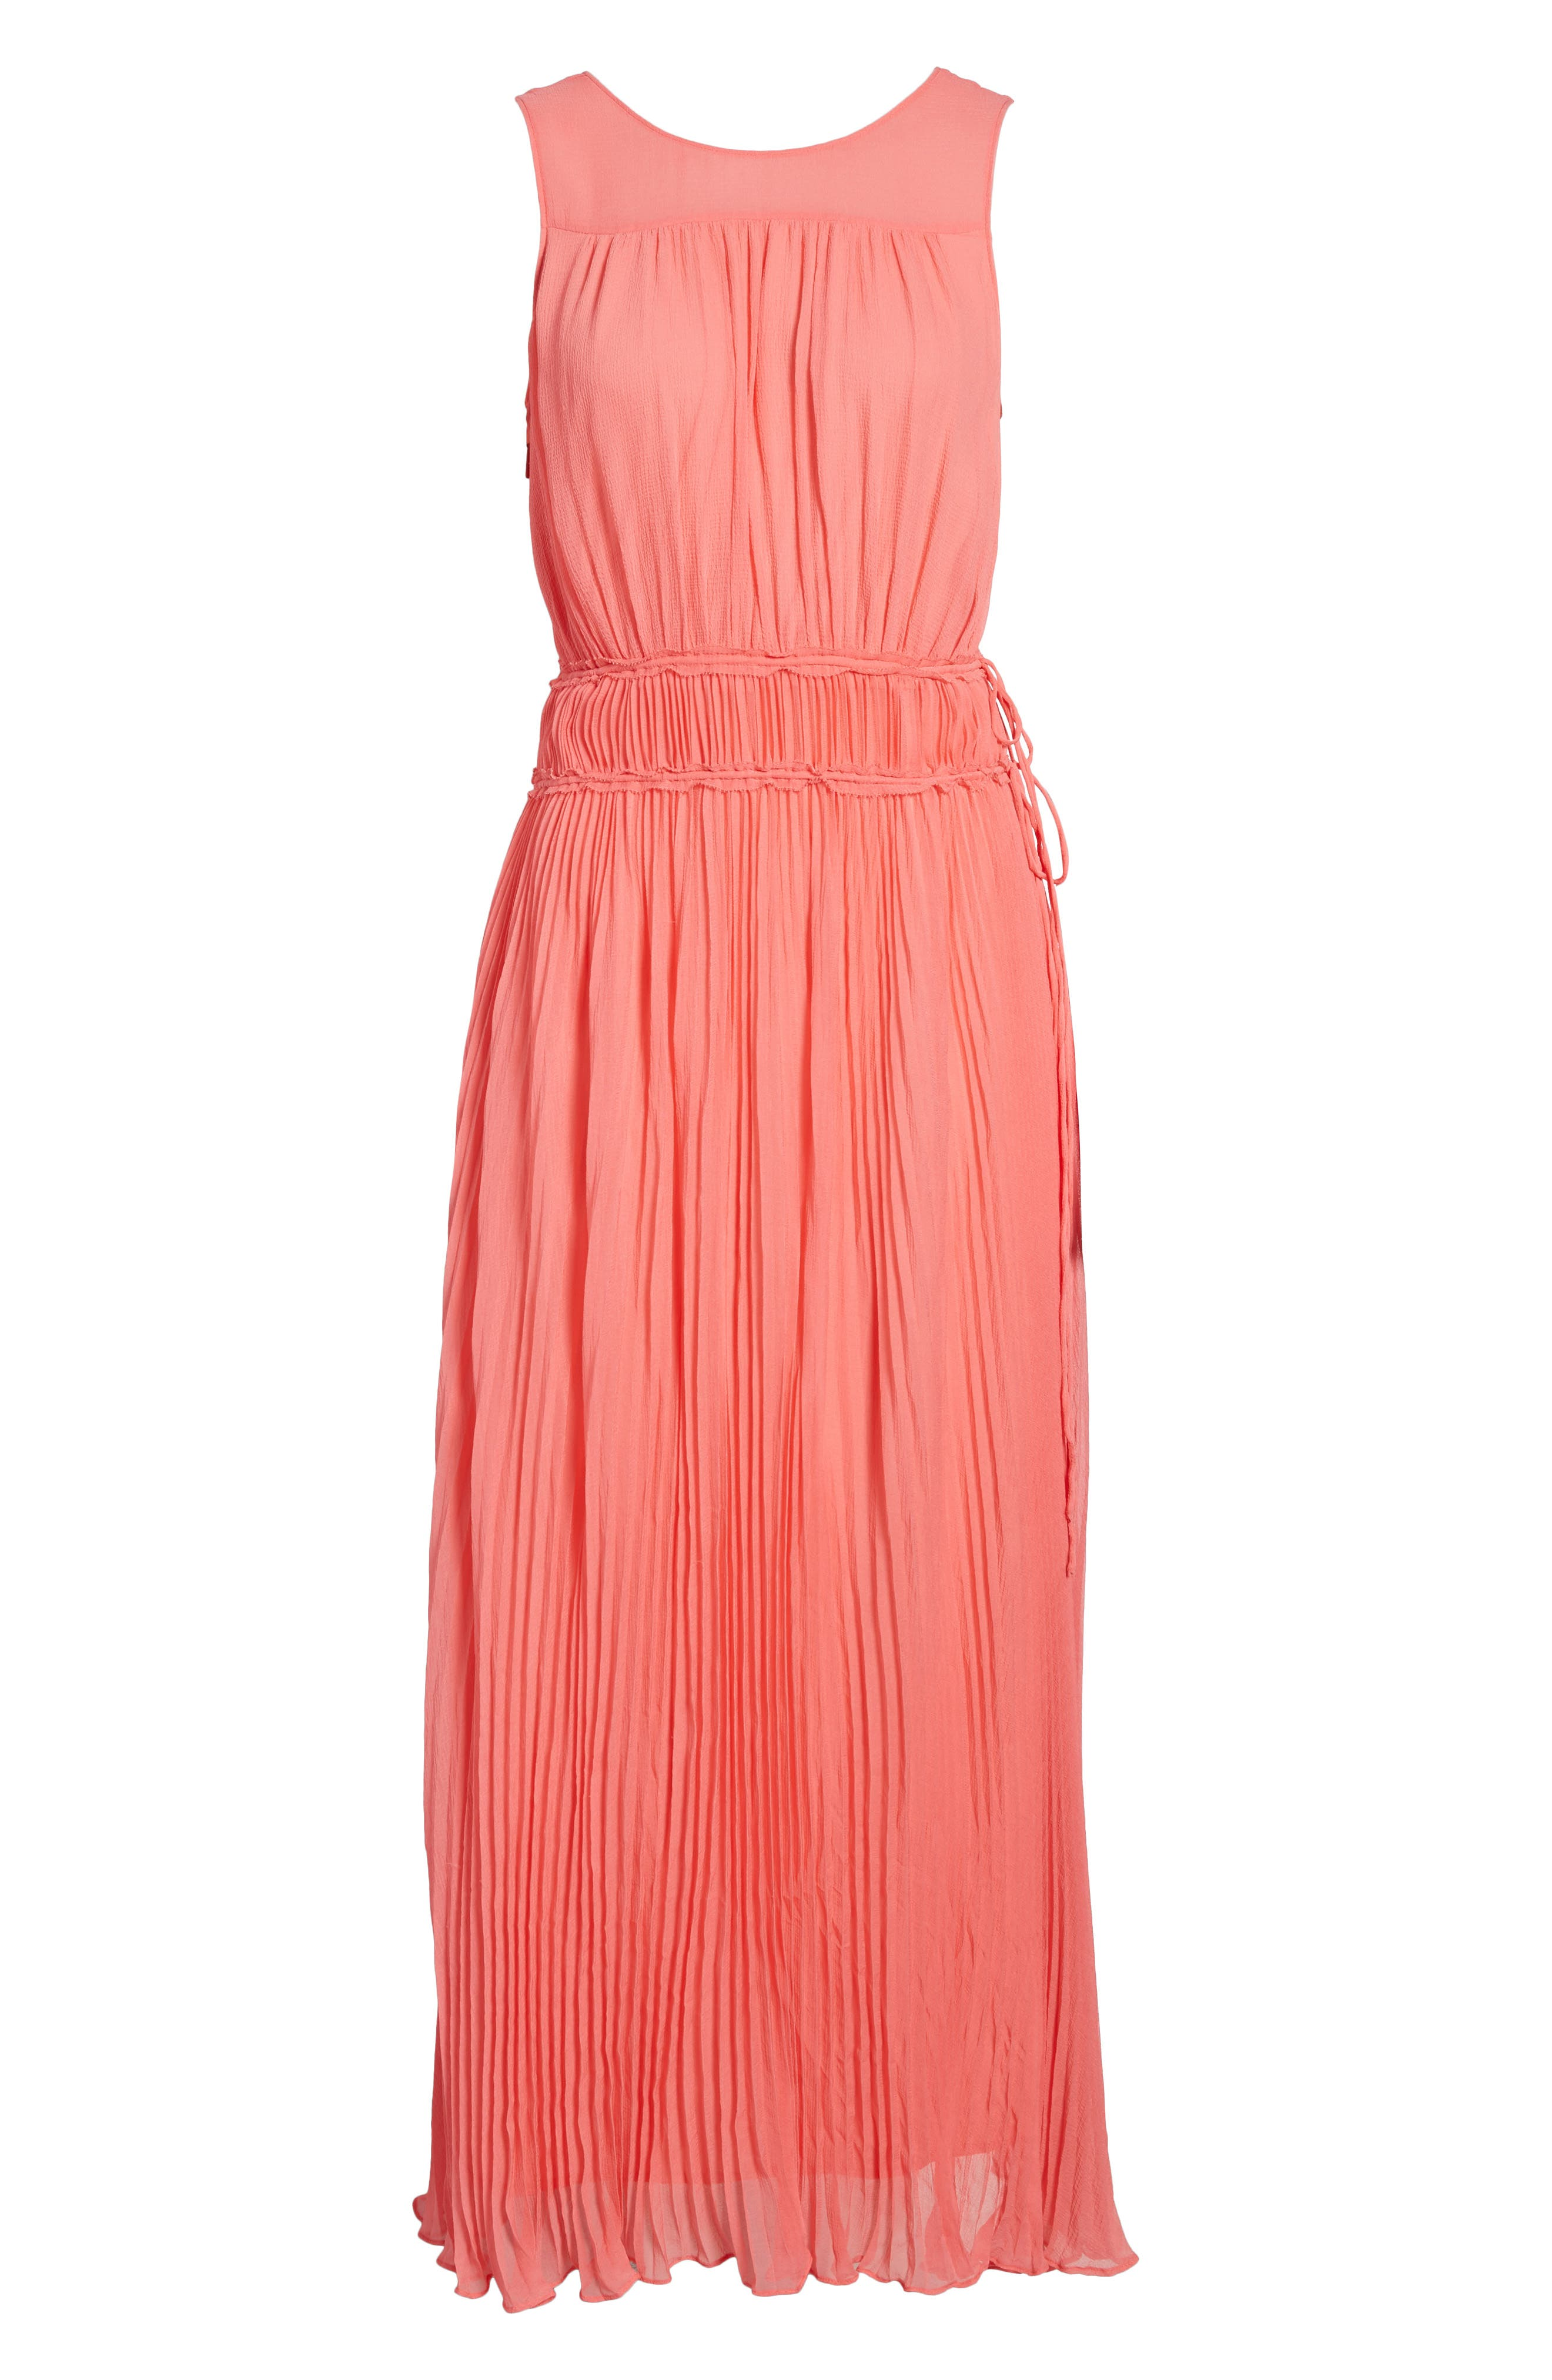 Pleated Crinkle Silk Maxi Dress,                             Alternate thumbnail 6, color,                             Coral Sugar